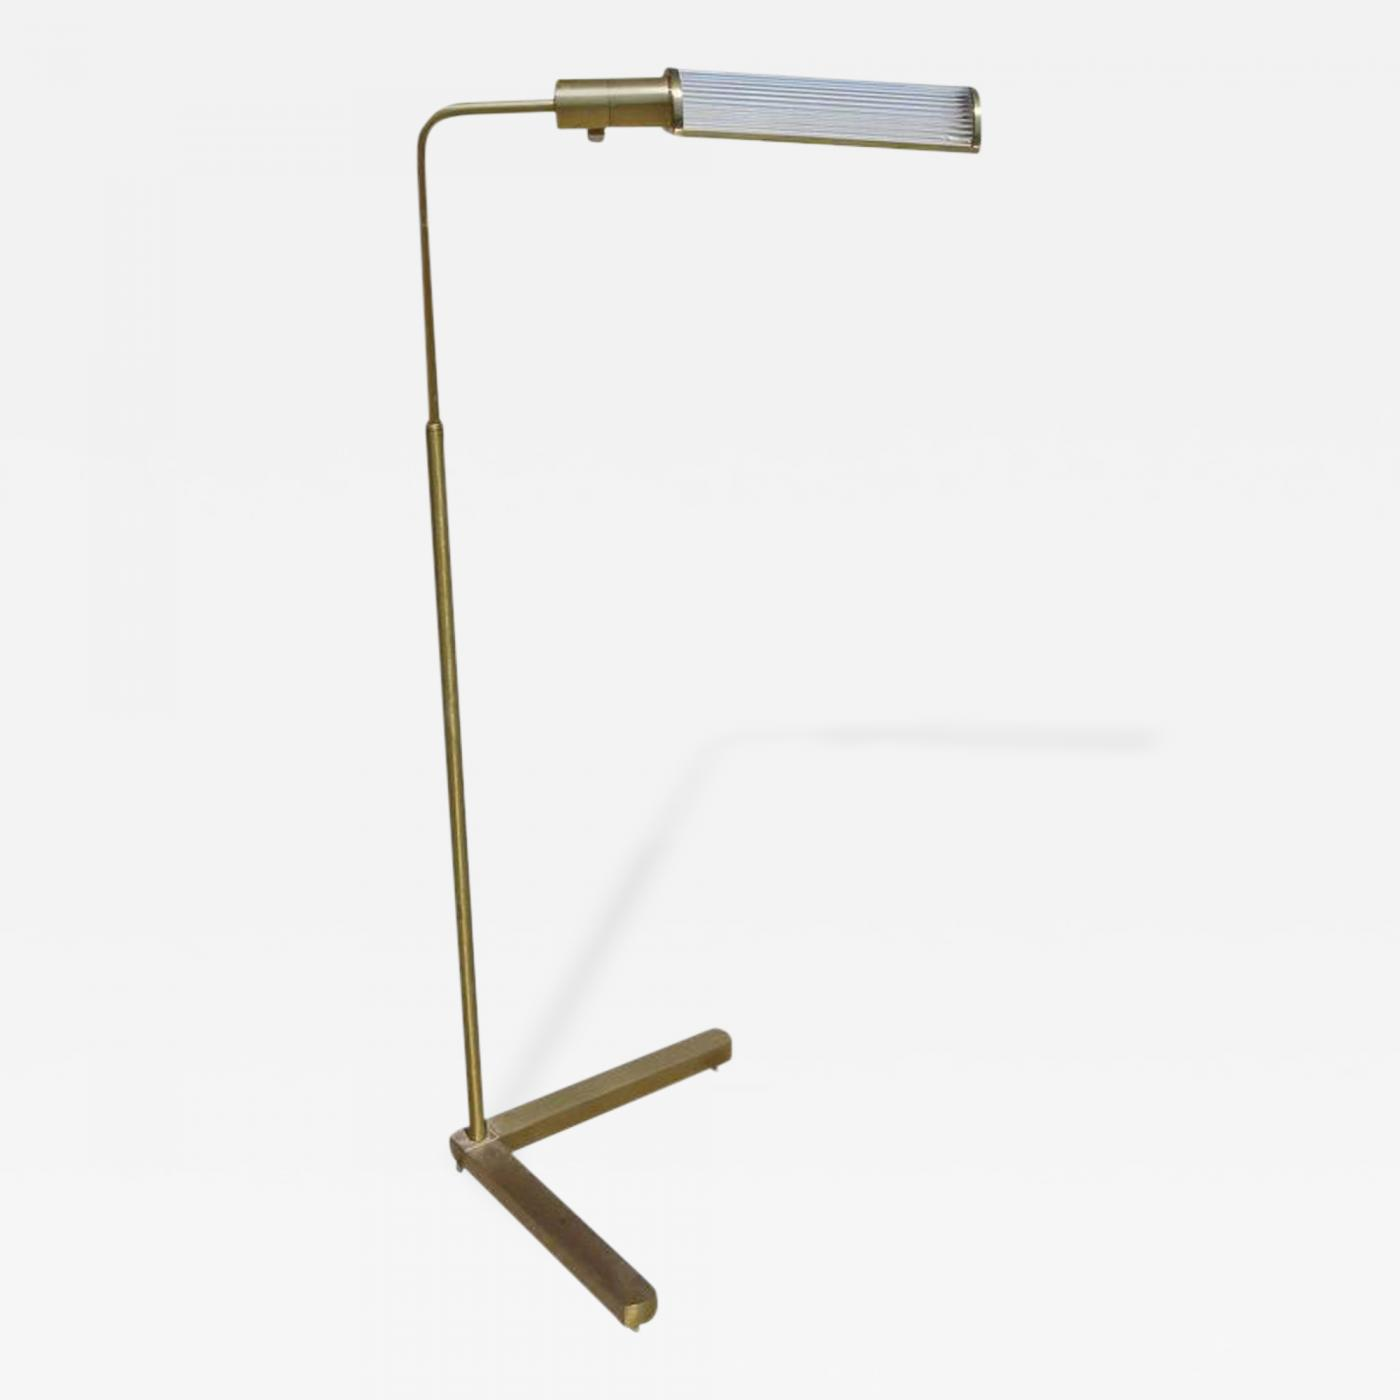 Casella lighting brass pharmacy floor lamp with glass rod shade by listings furniture lighting floor lamps casella lighting brass pharmacy aloadofball Gallery